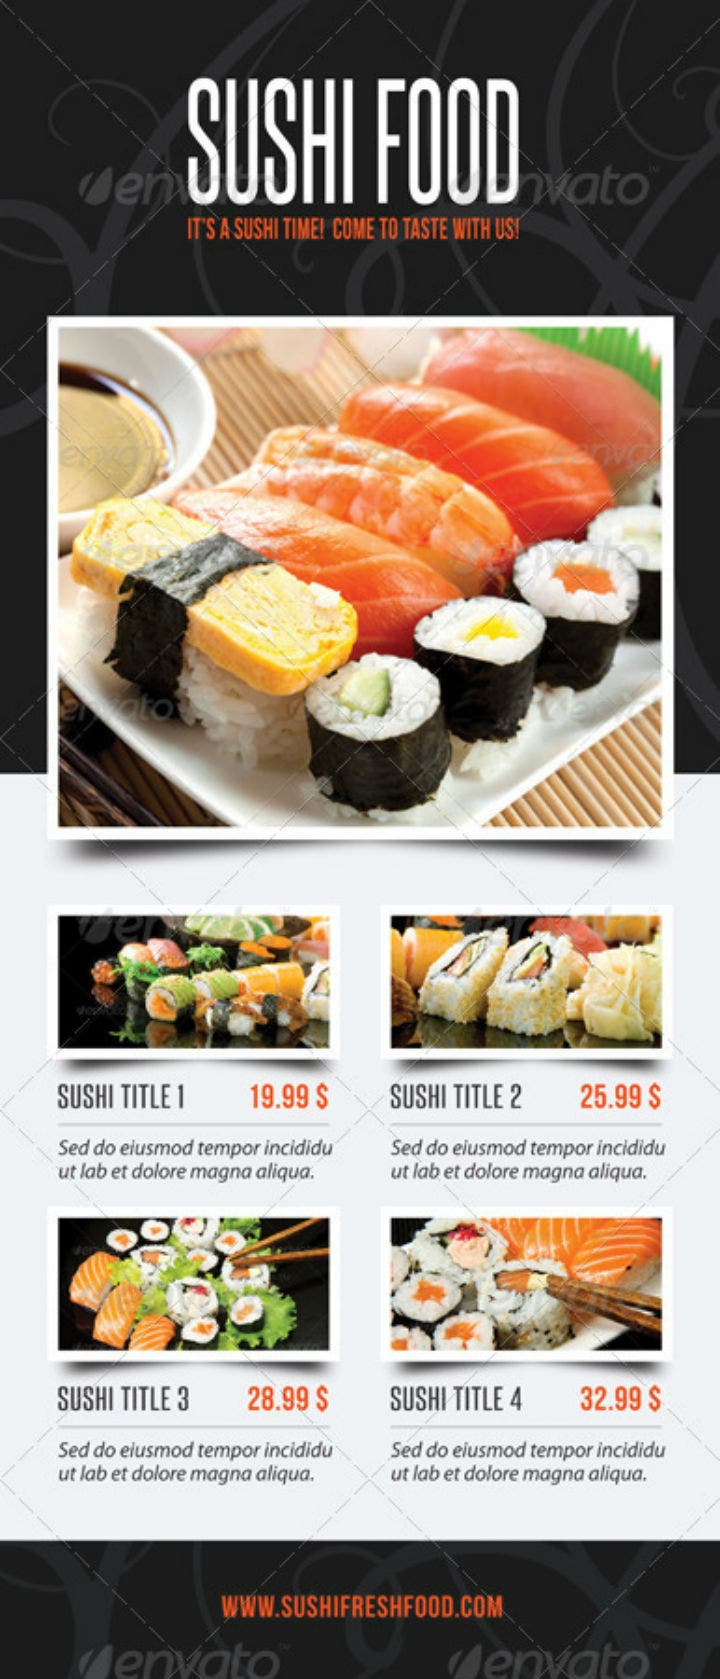 sushi-restaurant-rollup-banner-psd-template